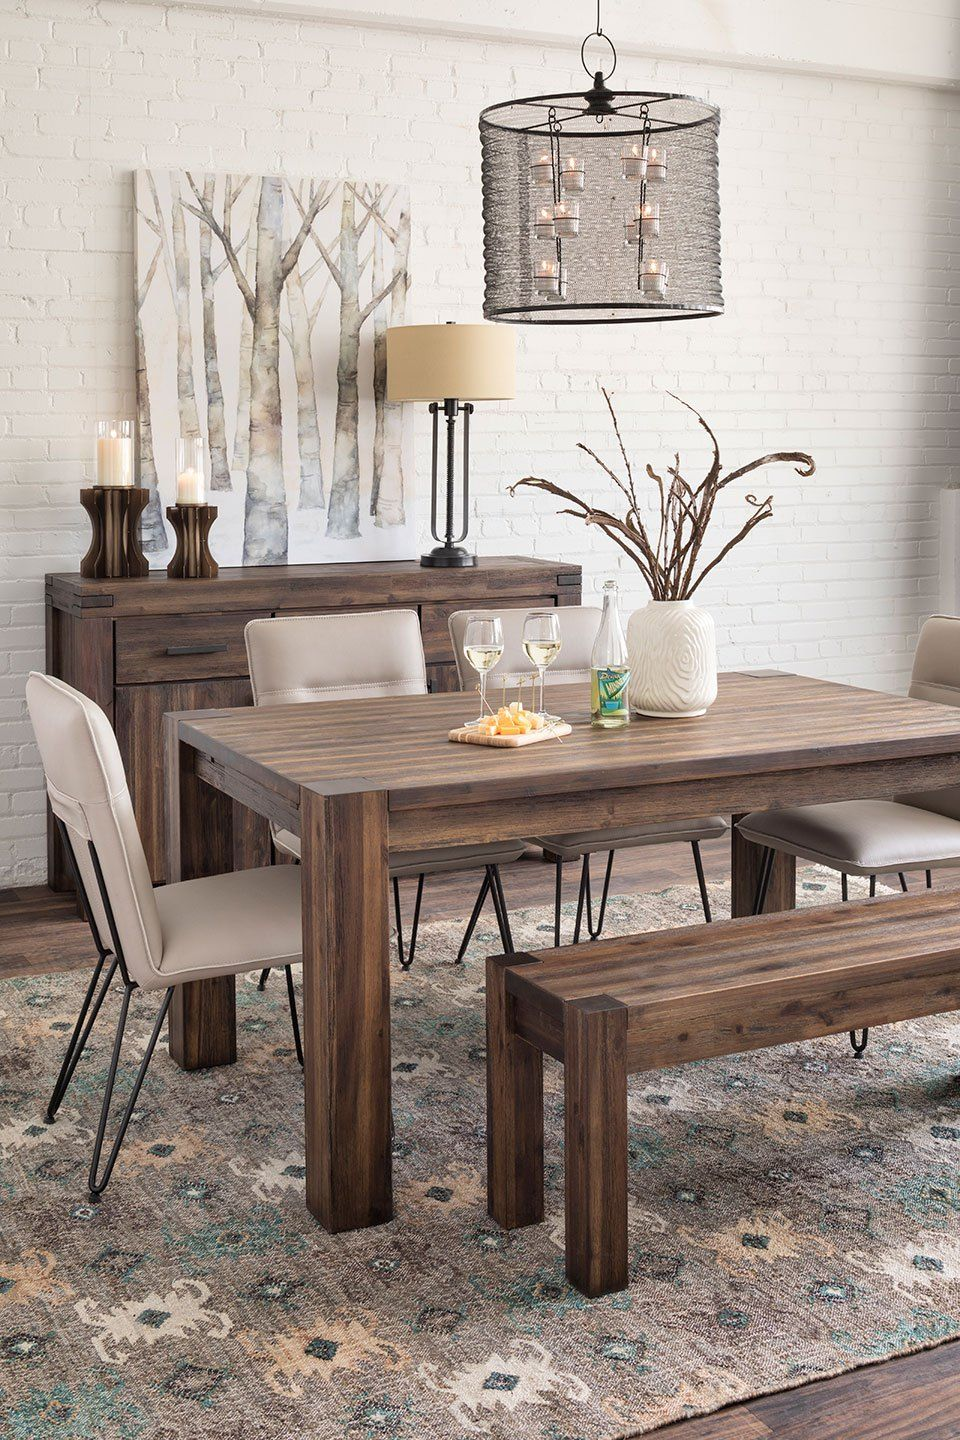 7 Reasons To Embrace The Rustic Trend Dining Table With Bench